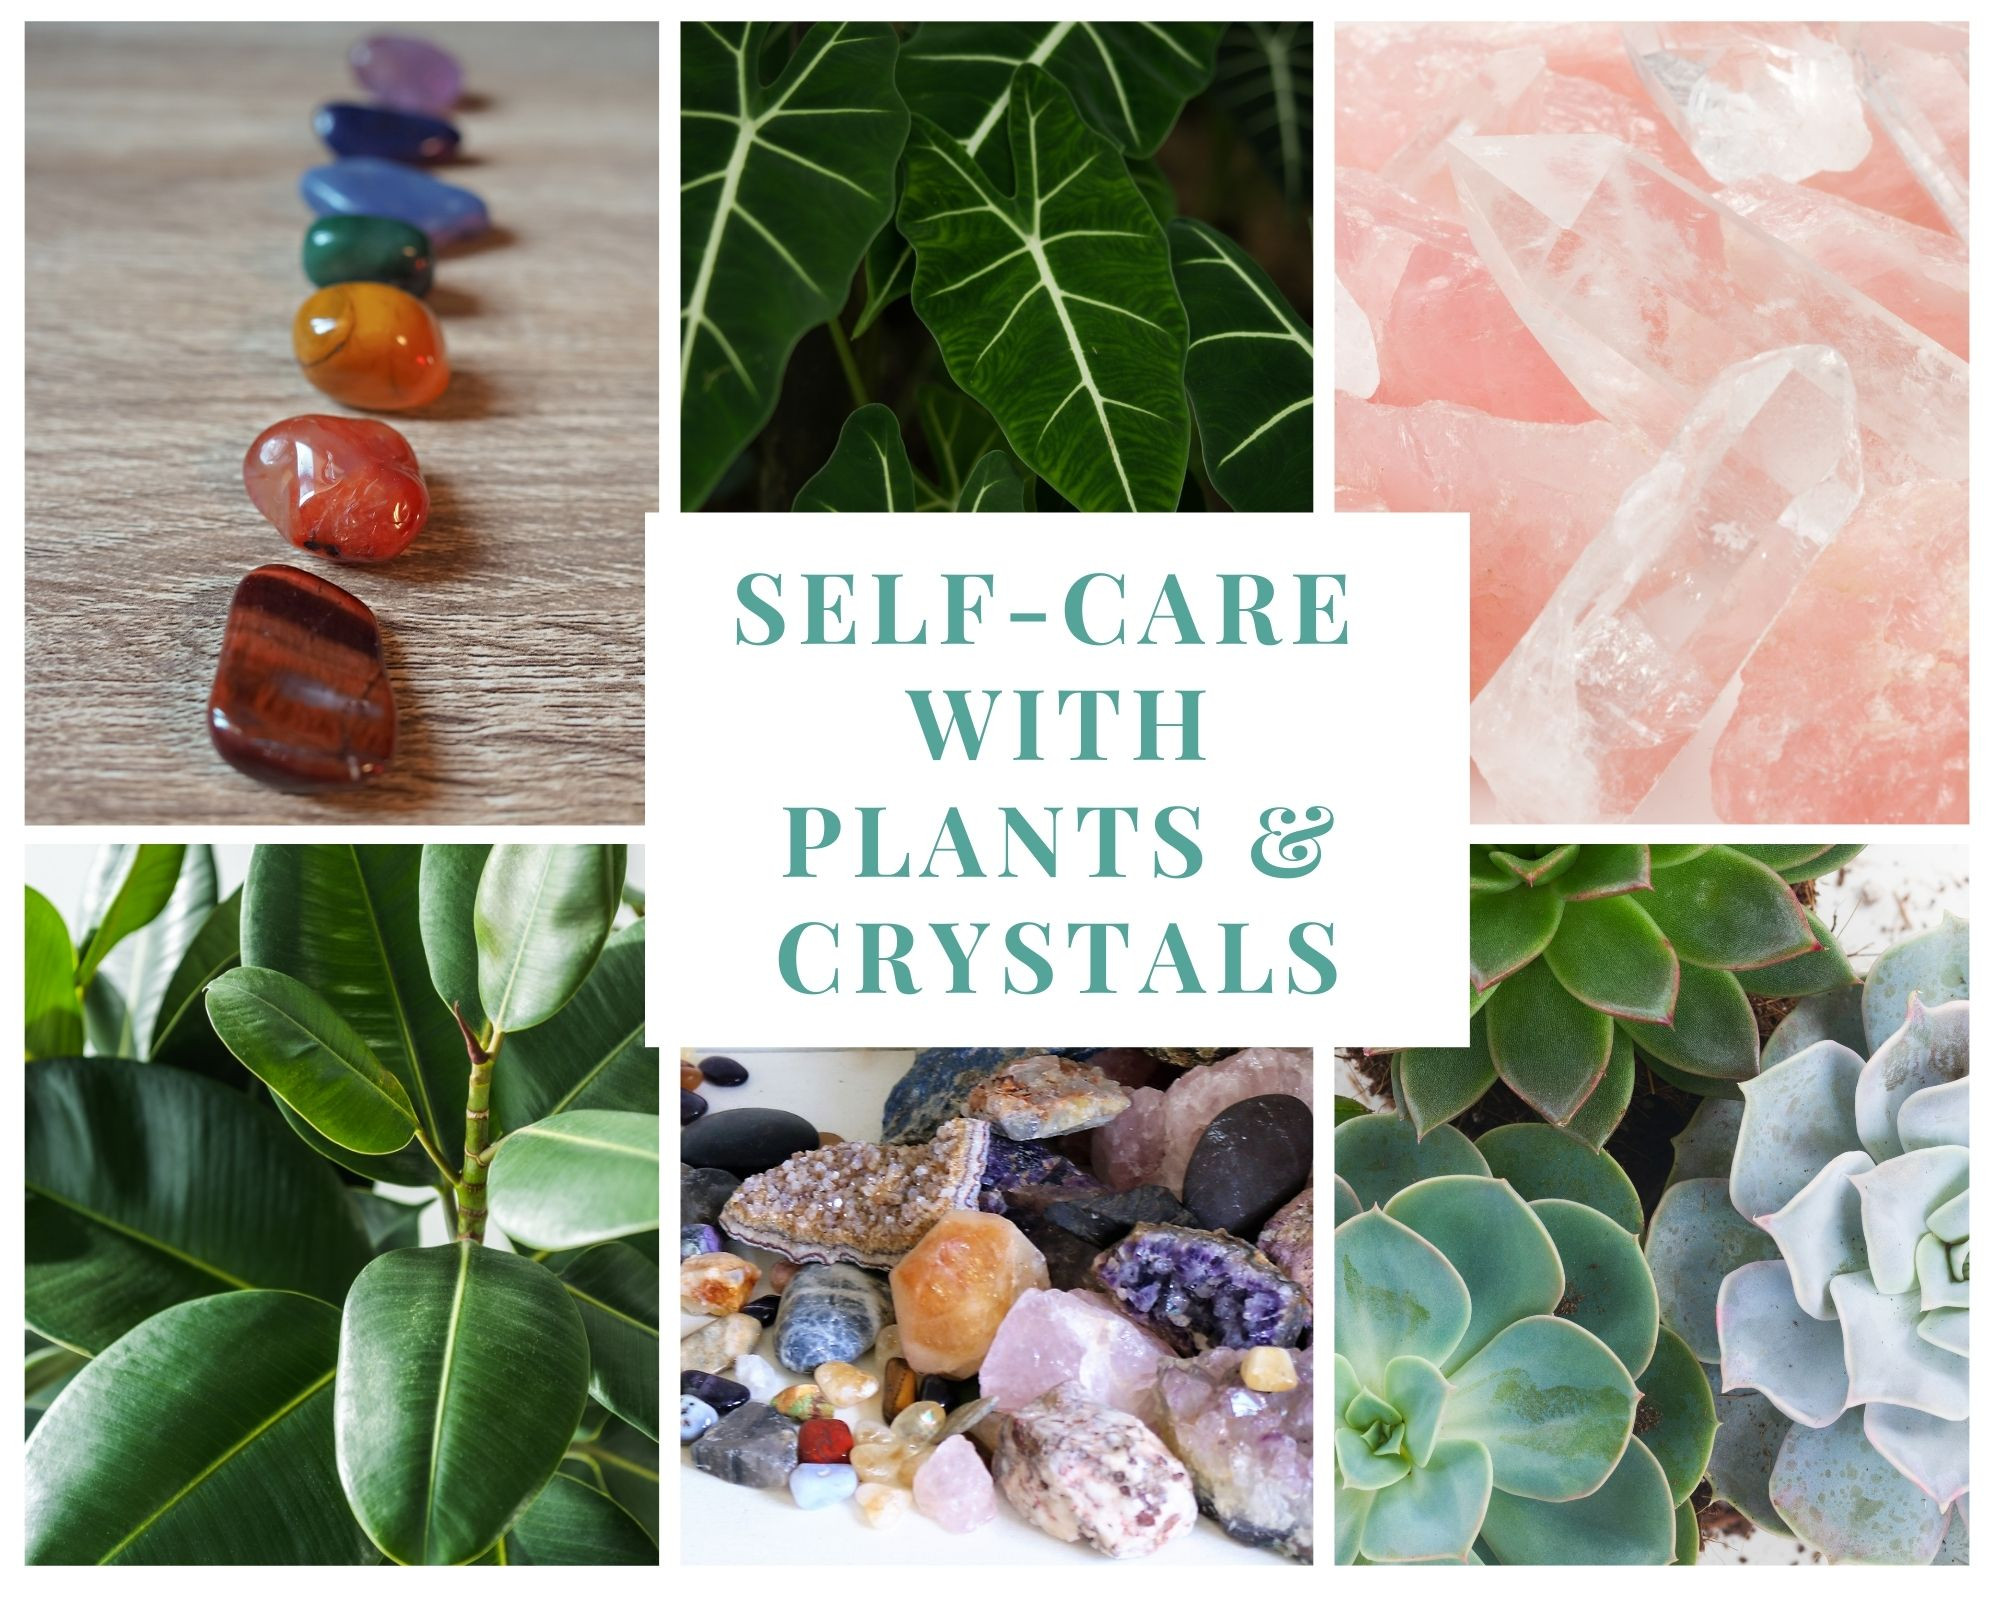 Self Care with Plants & Crystals